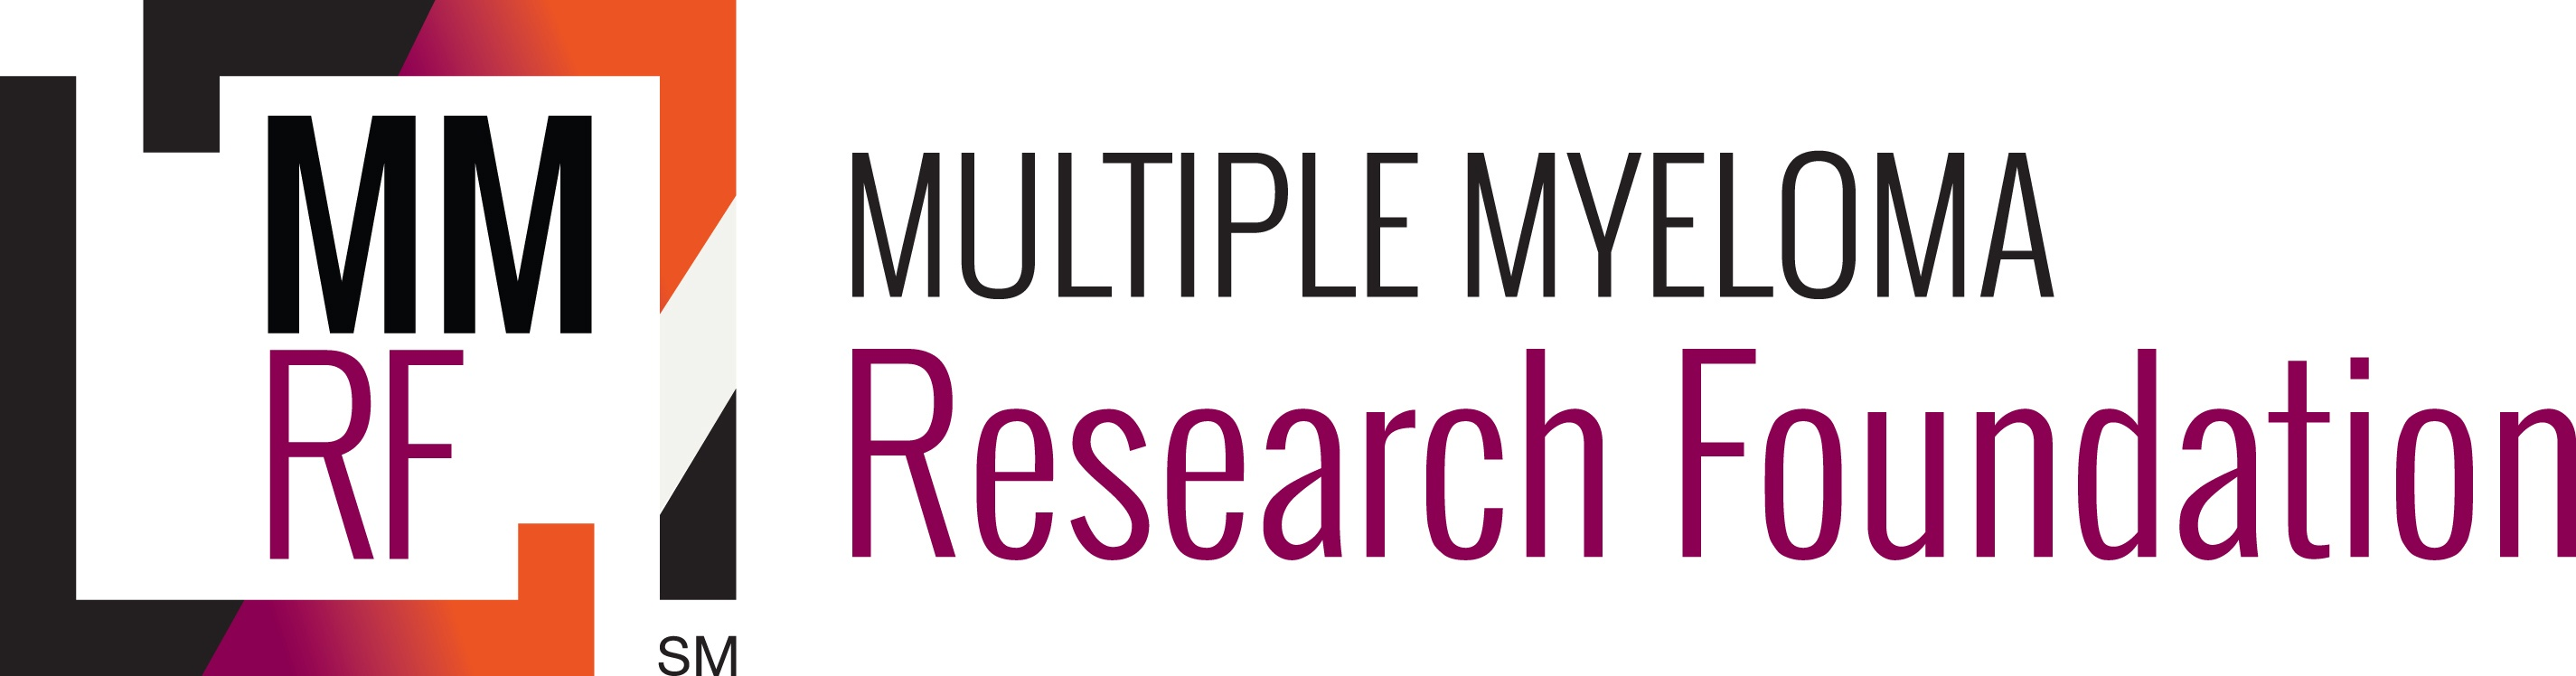 Multiple Myloma Research Foundation